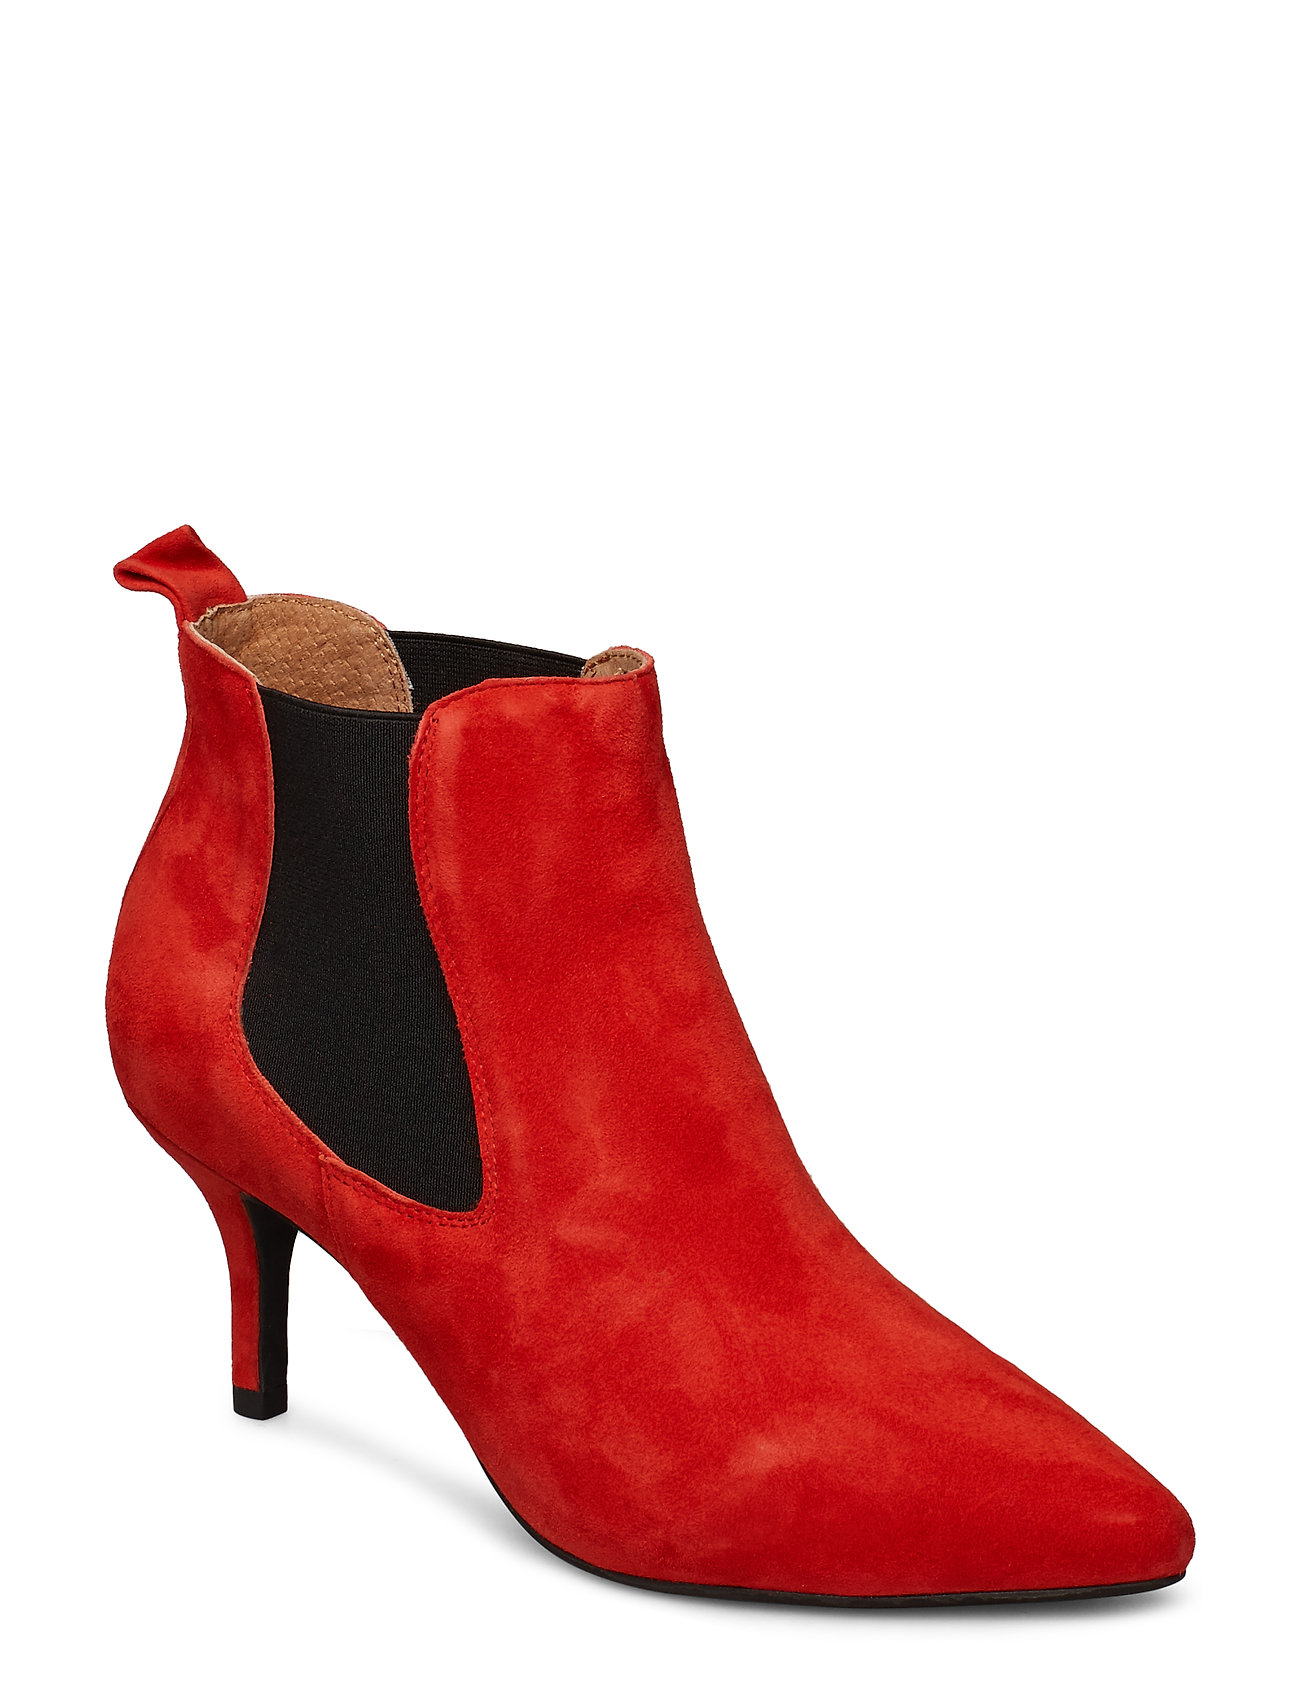 Image of Agnete Chelsea S Shoes Boots Ankle Boots Ankle Boot - Heel Rød Shoe The Bear (3406197715)